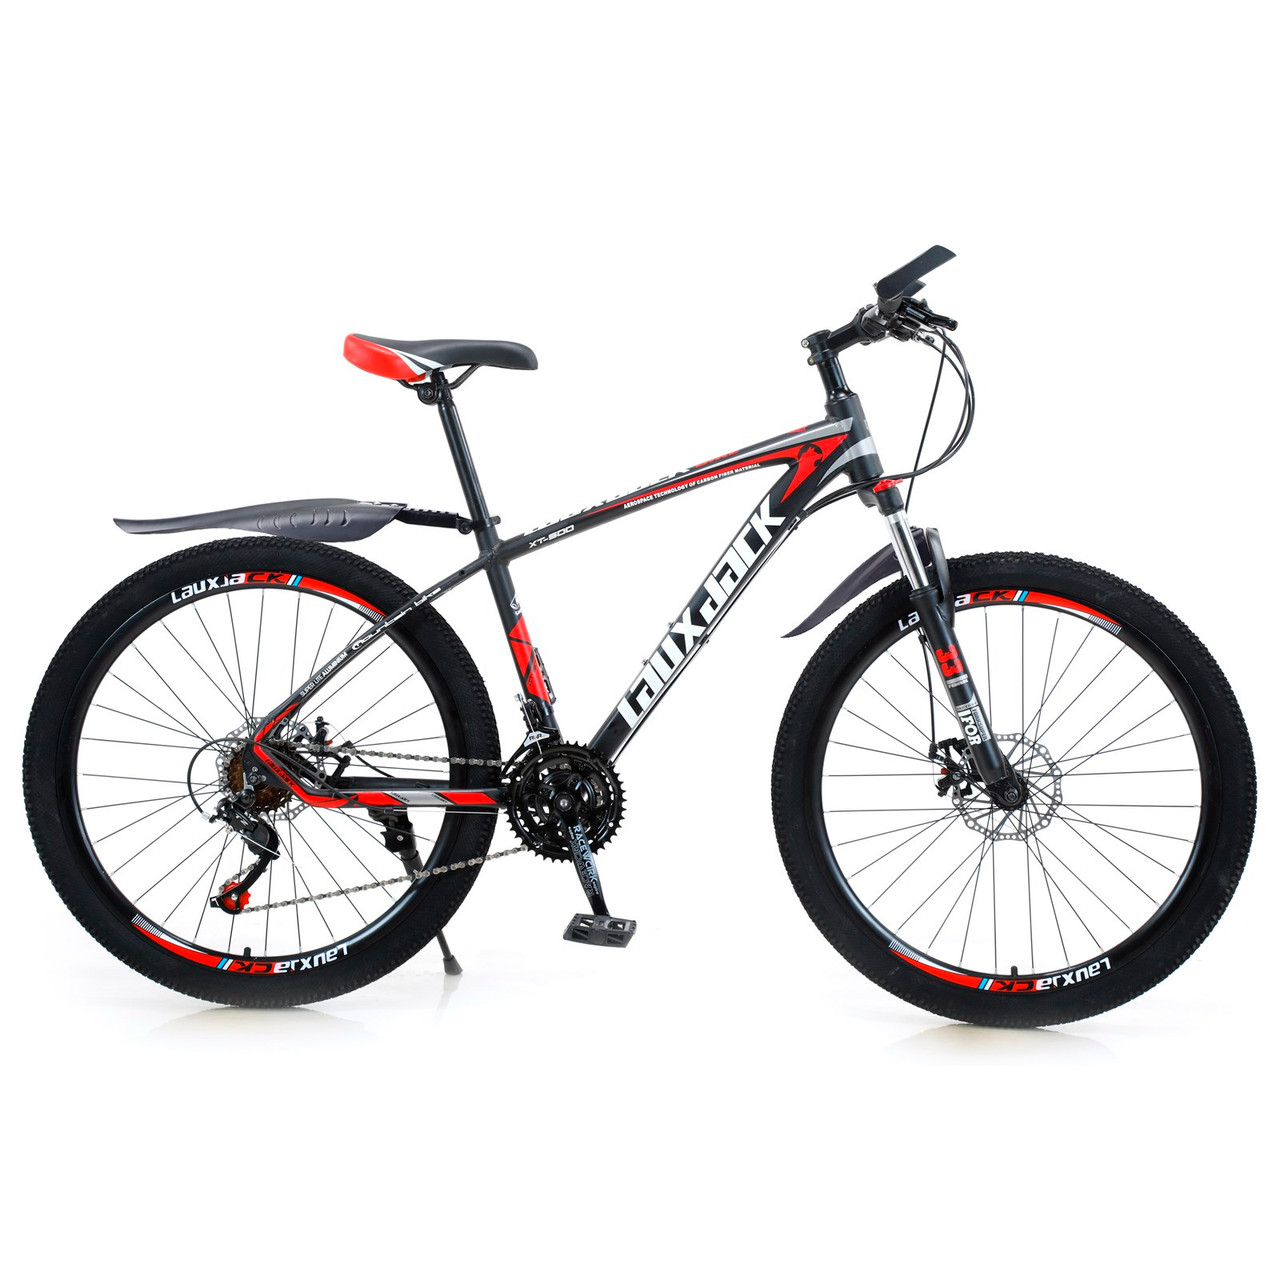 AUS 27.5 inches Wheels 21 Speed Unisex Adult Mountain Bike Bicycle MTB Black+Red